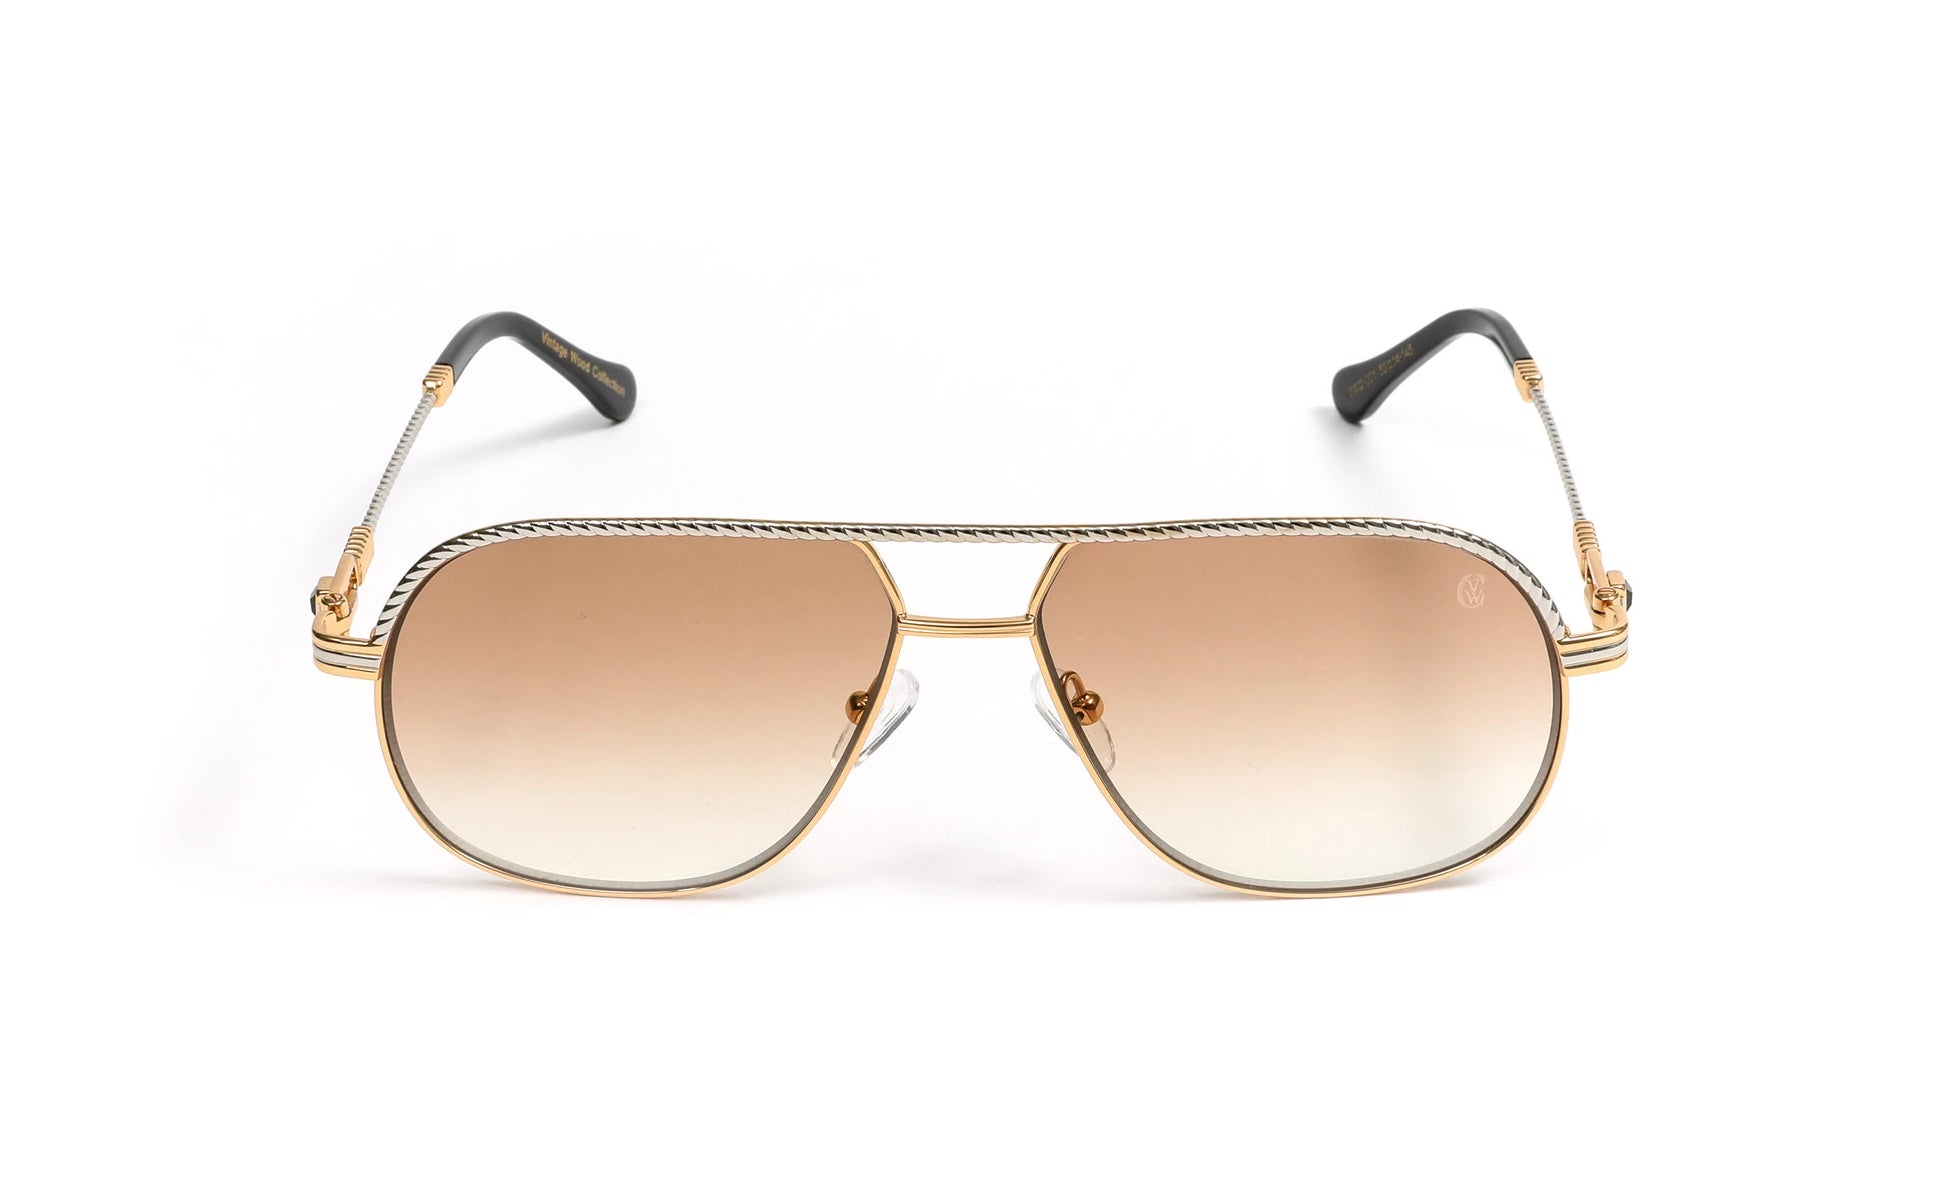 Silver and 18k Gold Plated Aviator Sunglasses, Gradient Brown Anti Reflective Lenses